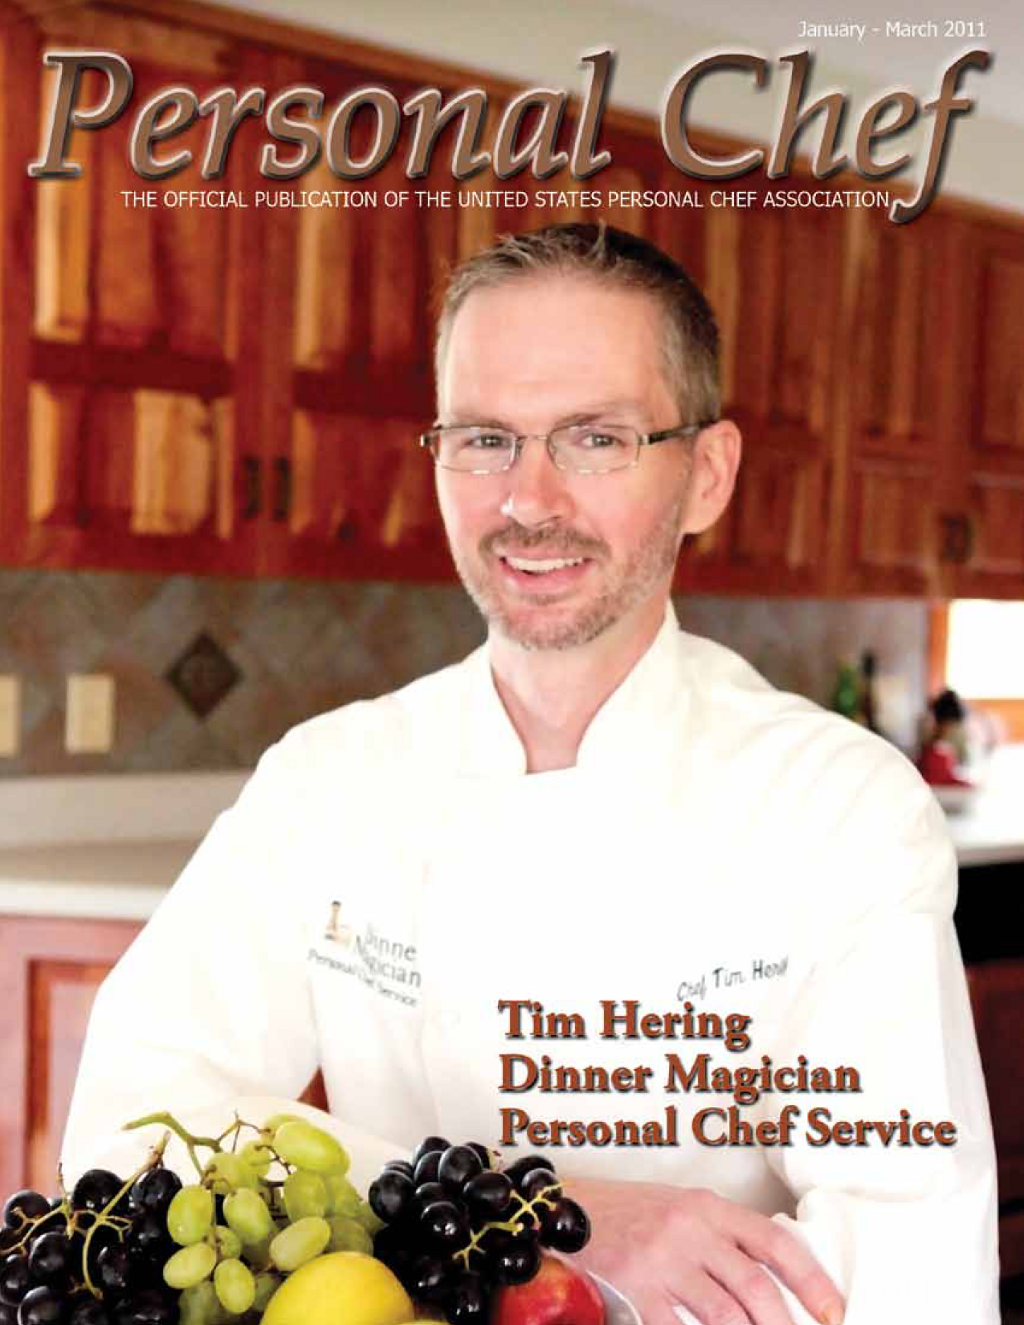 Chef Tim Hering CPC: Personal Chef Magazine January - March 2011